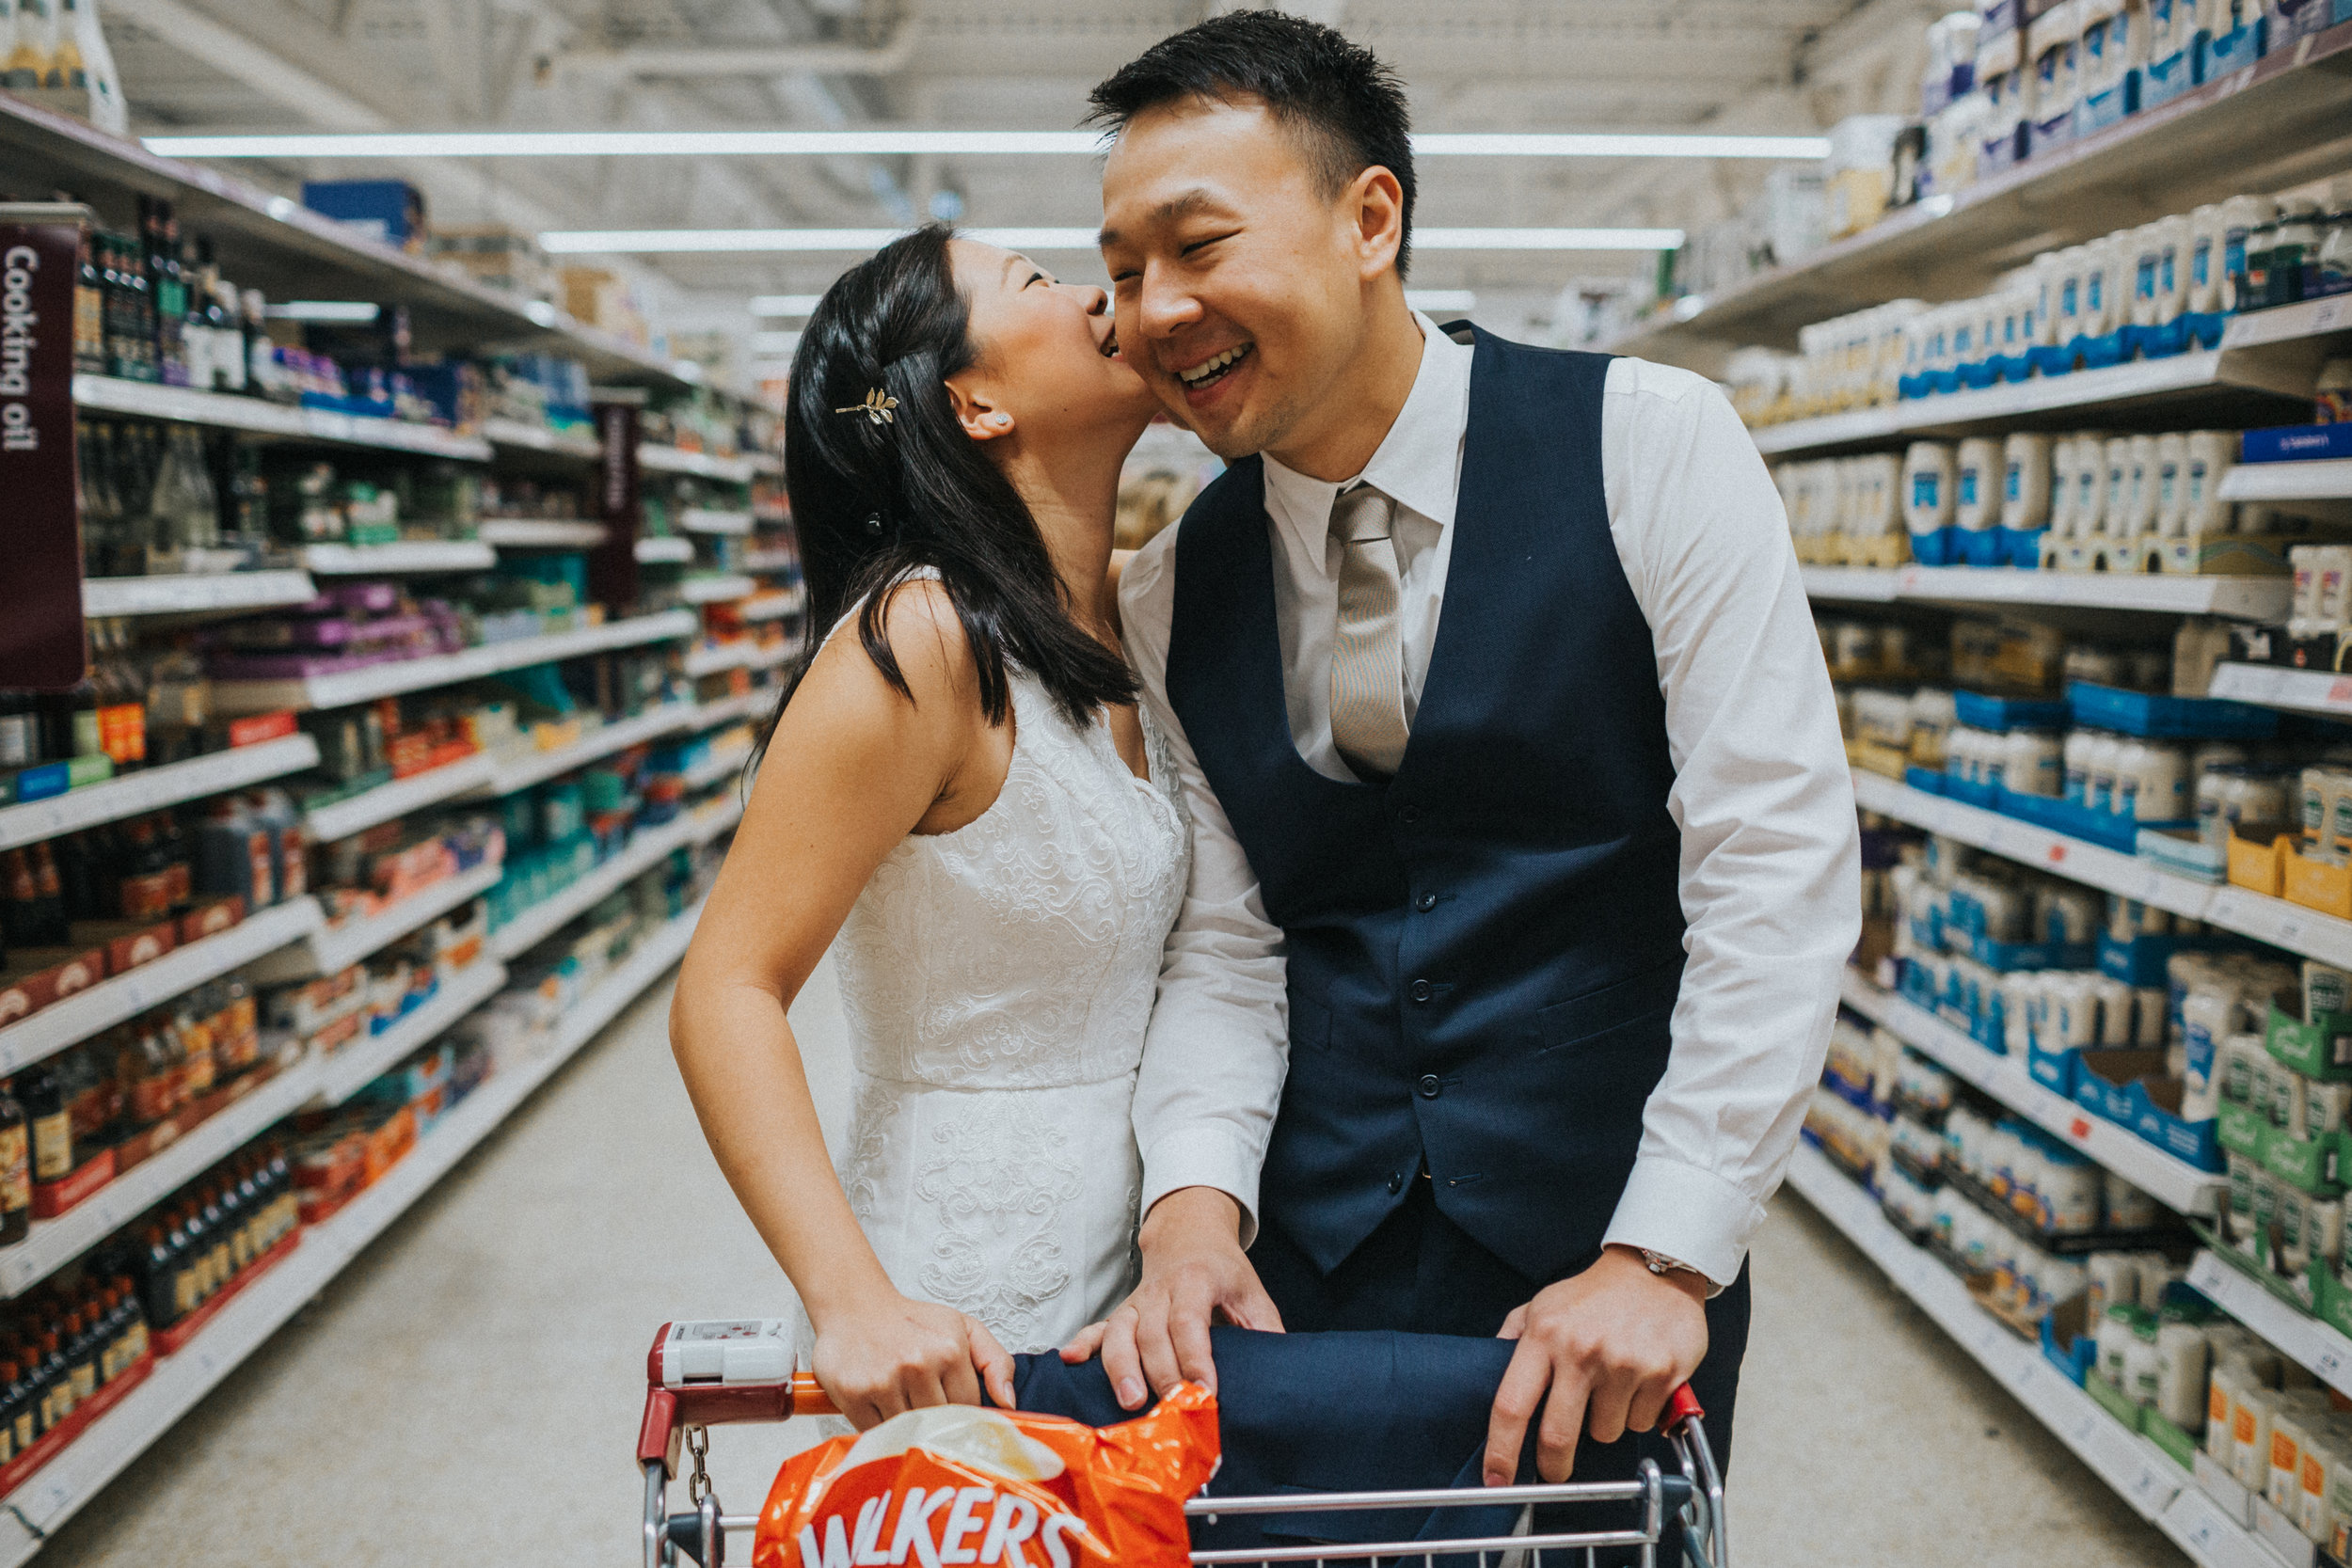 Bride whispers into grooms ear in supermarket.